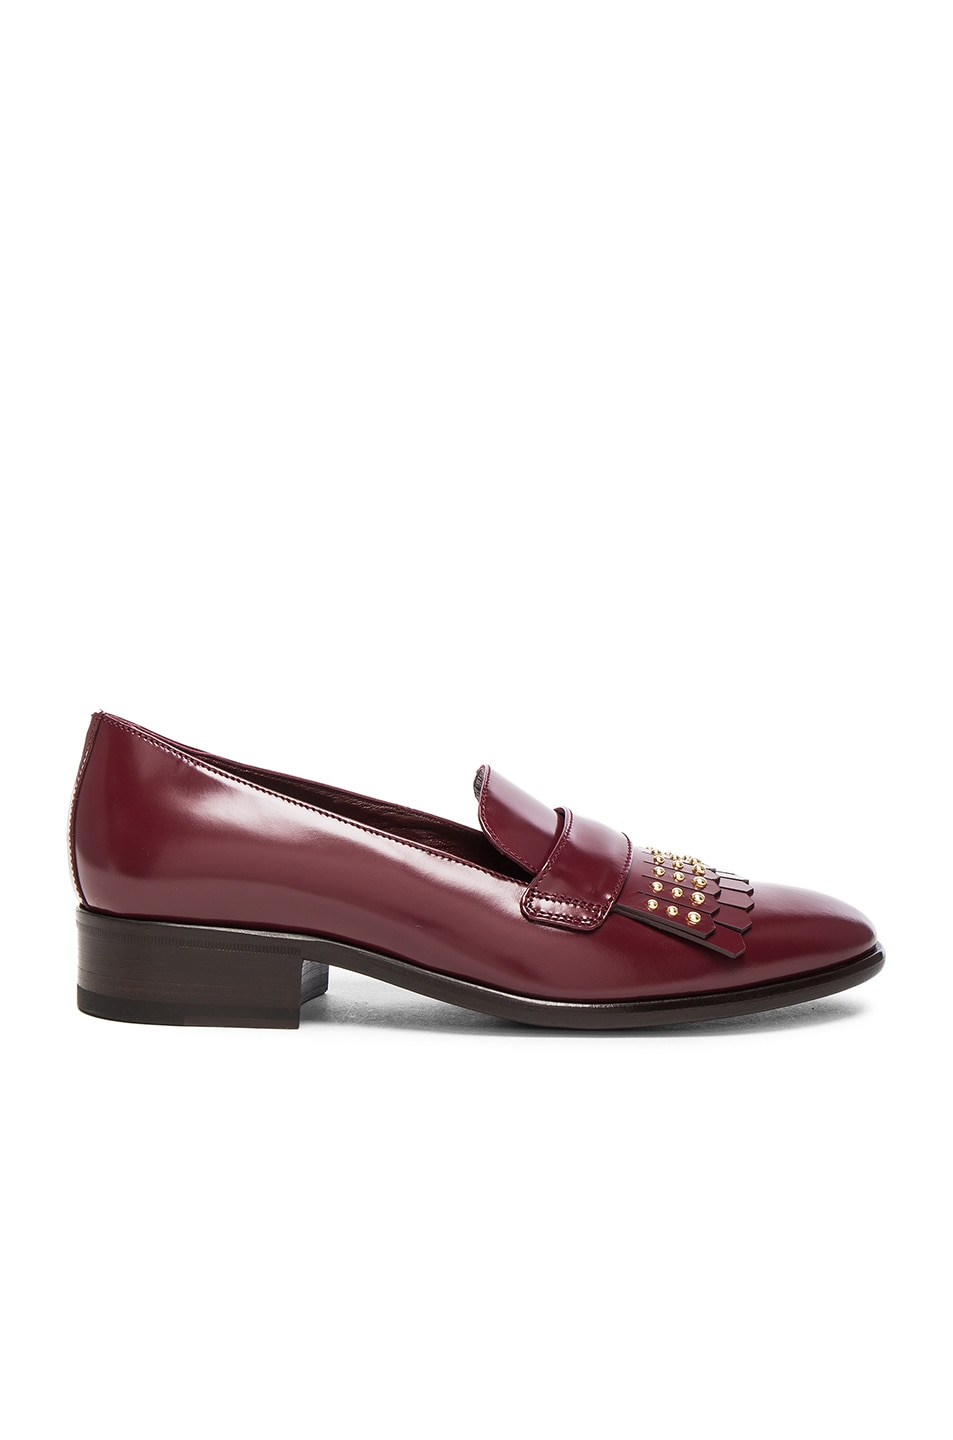 Image 1 of Alexander McQueen Stud Fringe Leather Loafers in Light Oxblood